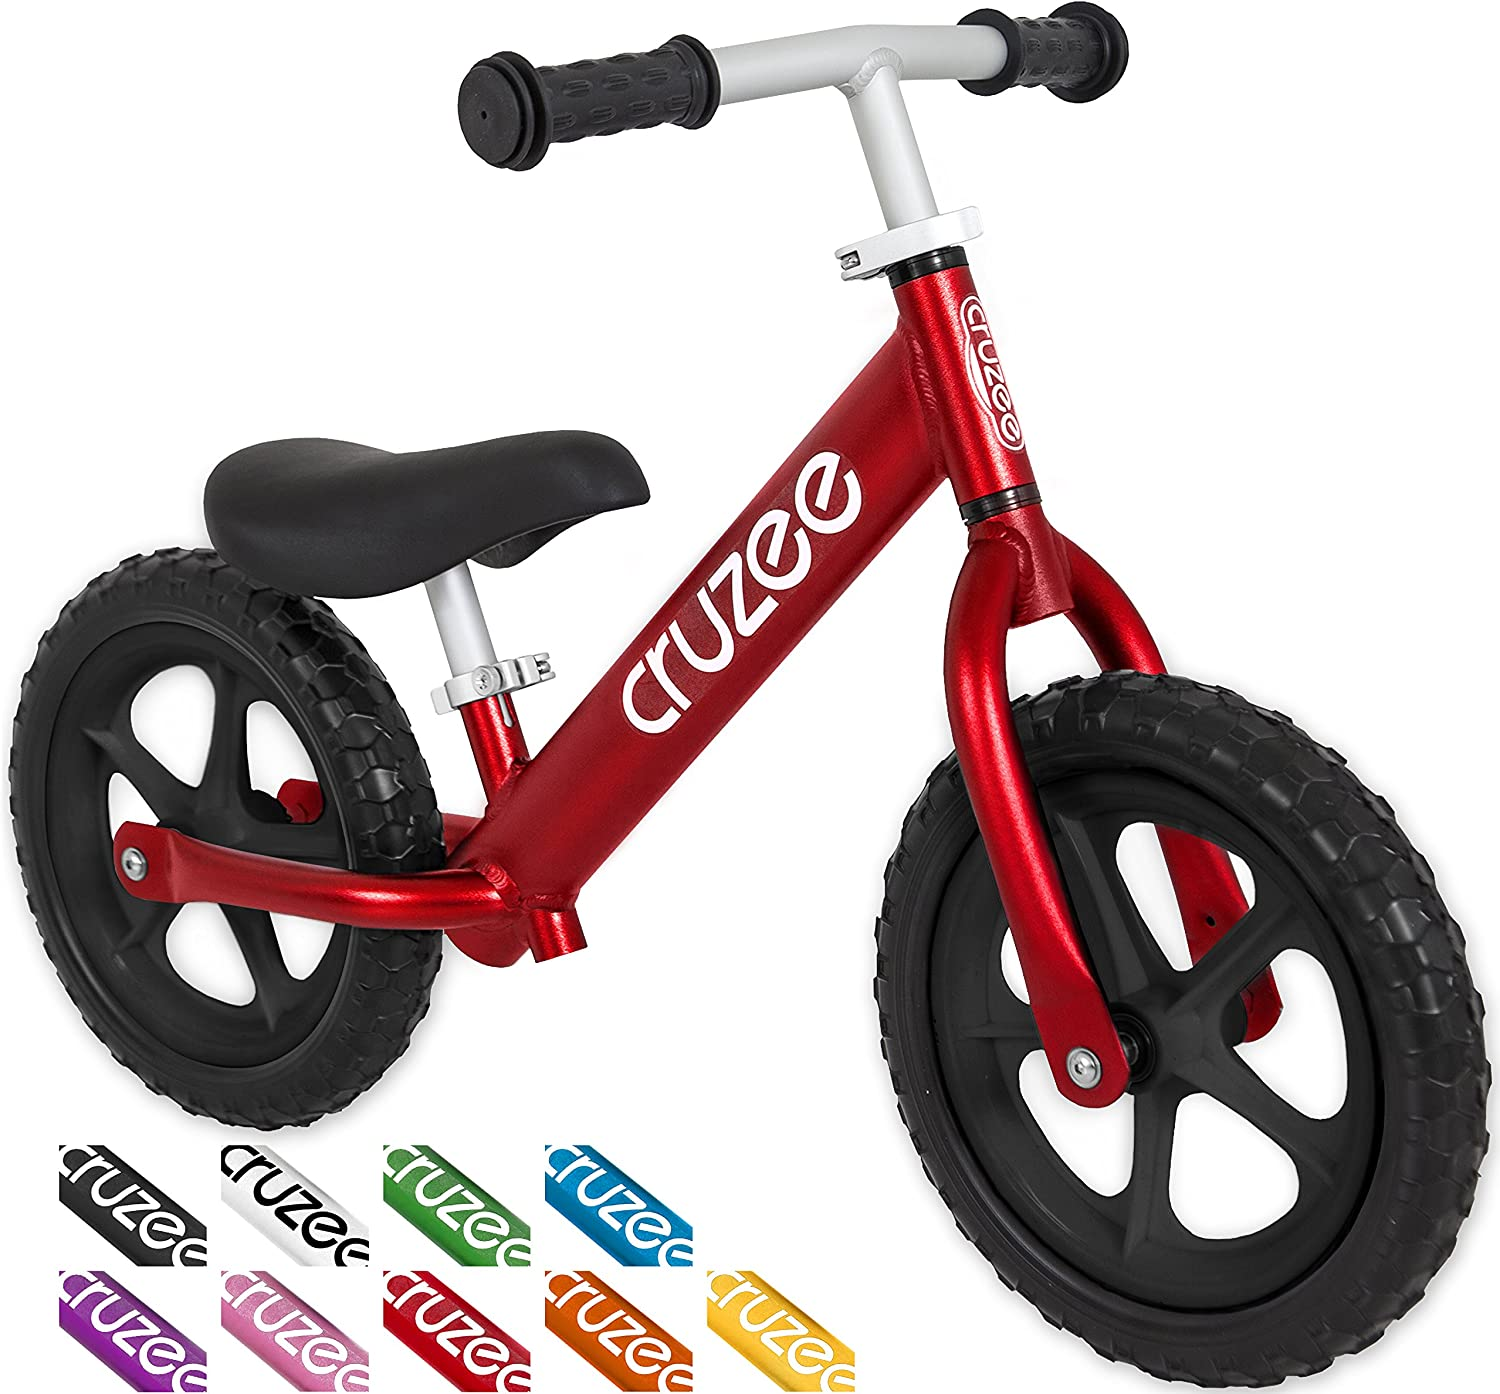 Top 10 Best Balance Bikes For Toddlers 2020 Reviews 8